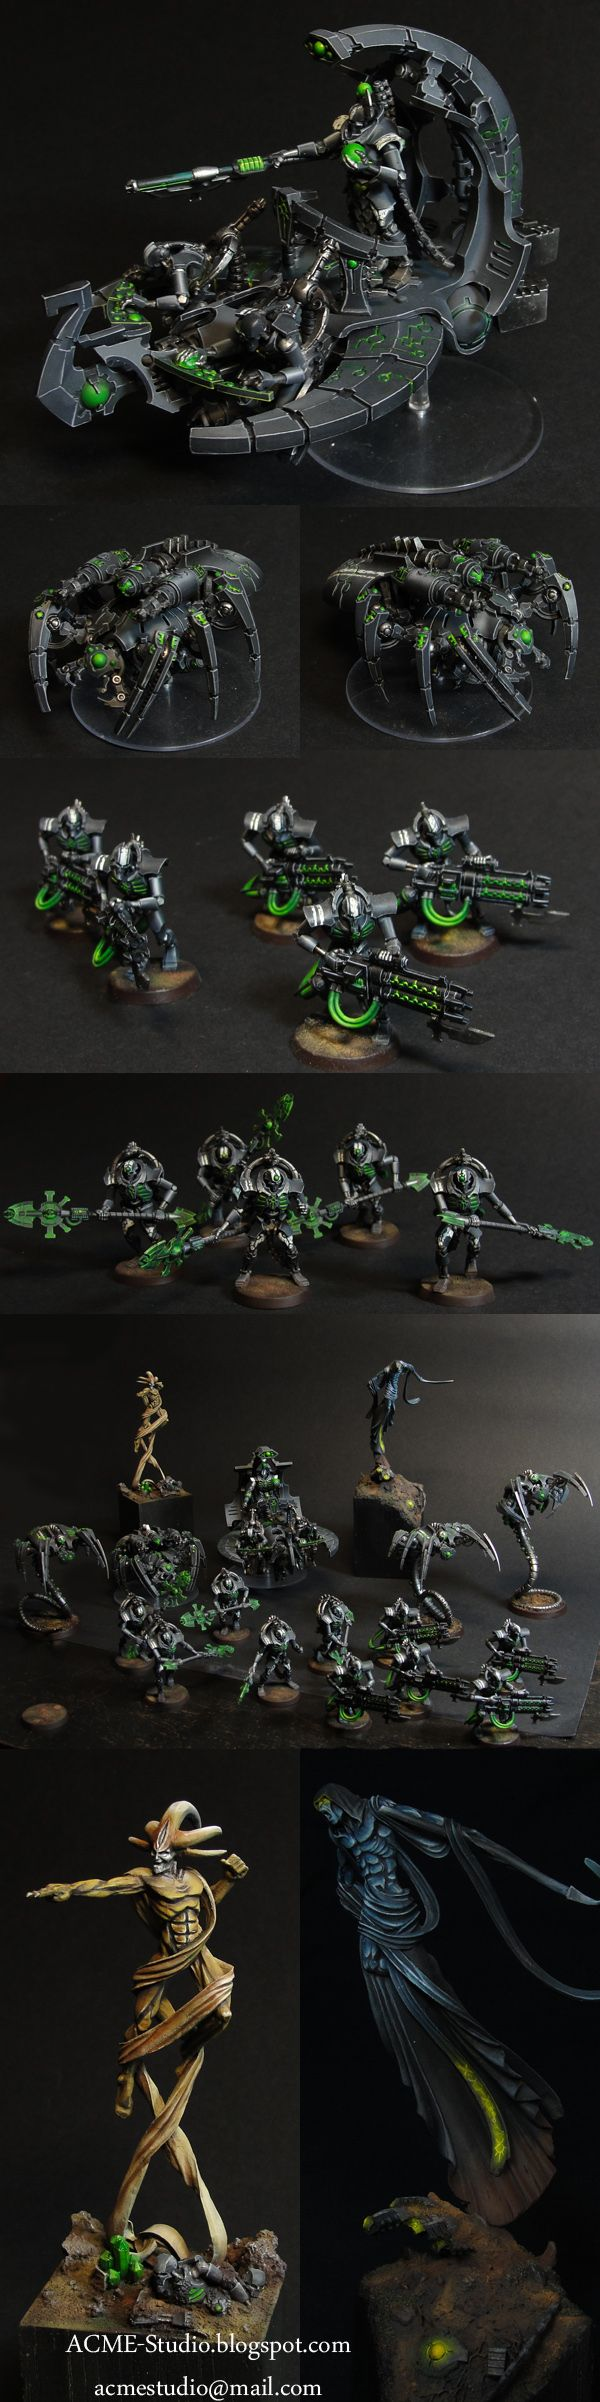 CoolMiniOrNot - Necron Army by ACME-Studio